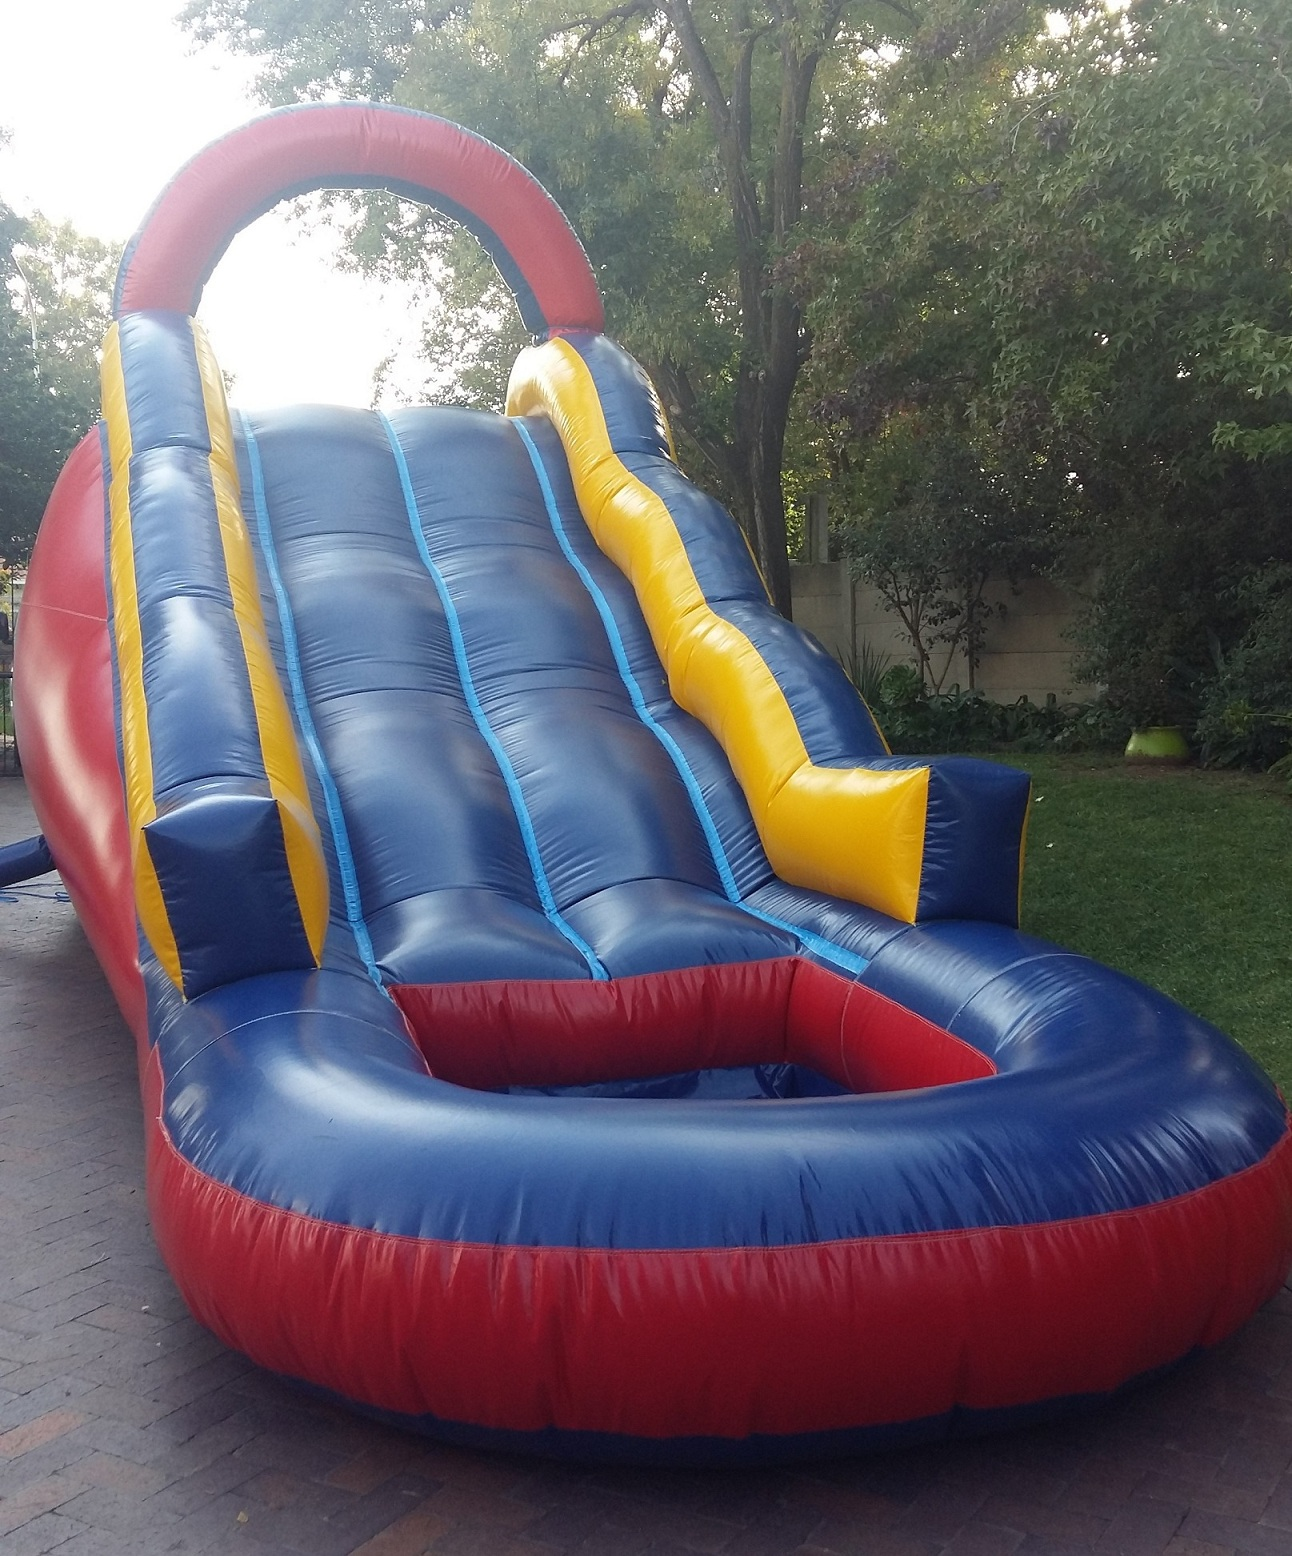 Extreme Inflatable Water Slide For Sale: Crazy Inflatables, Jumping Castles